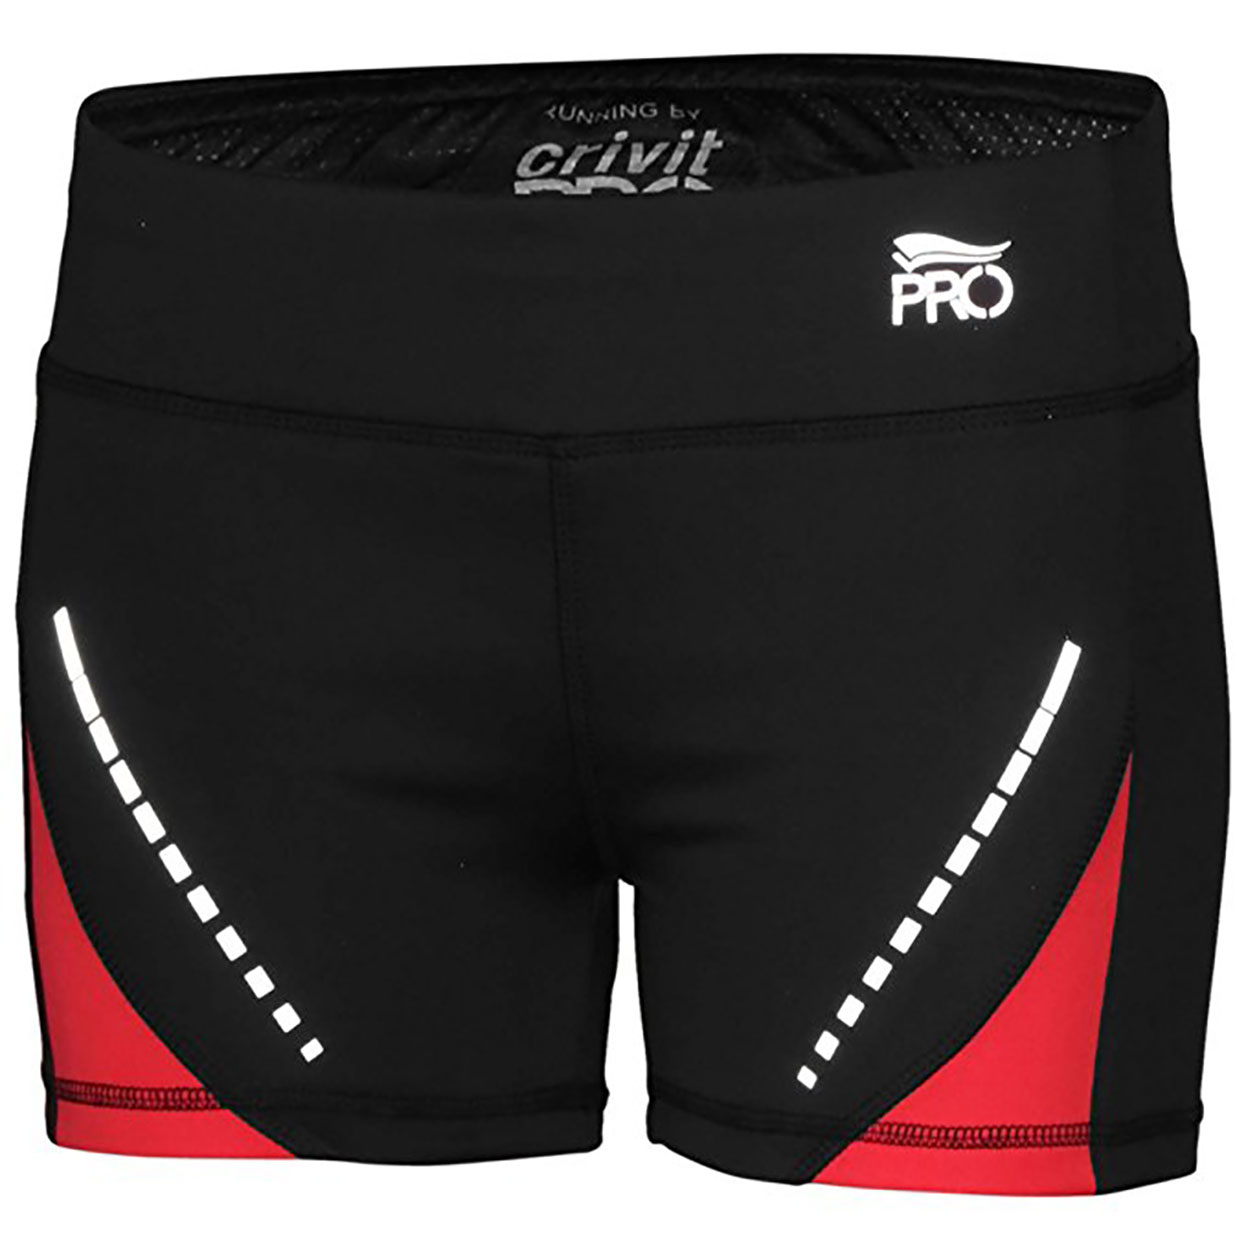 Women's Performance Active Running Shorts Black Red Ian274154 - S 58f92f3940f76c07c053b8e3